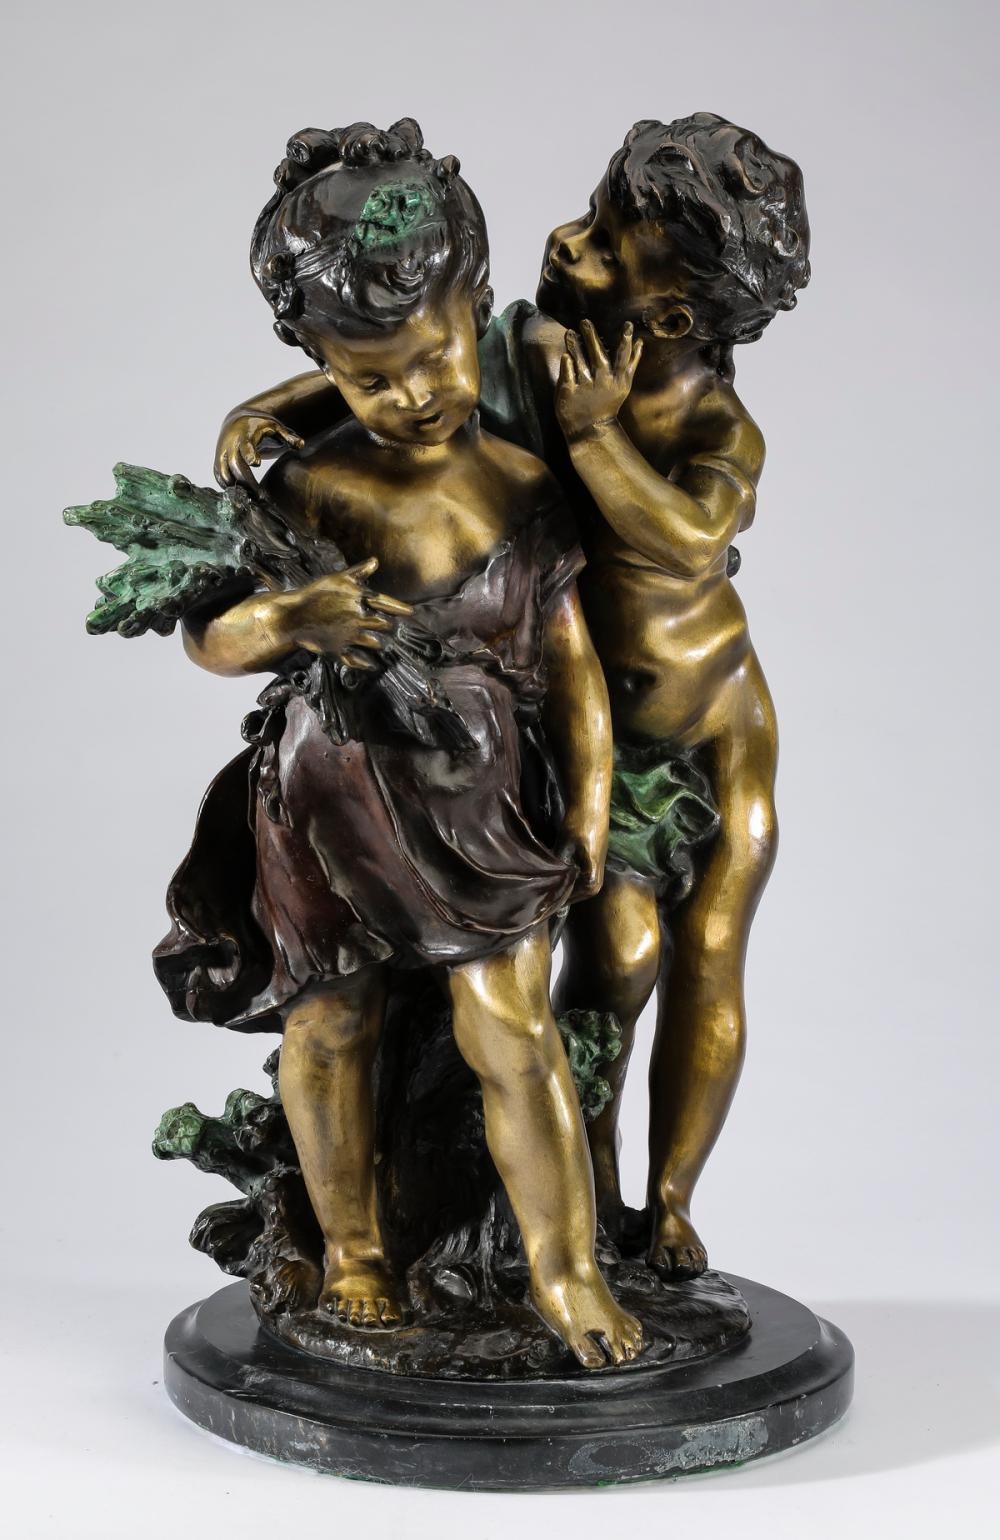 Bronze sculpture in the manner of Auguste Moreau